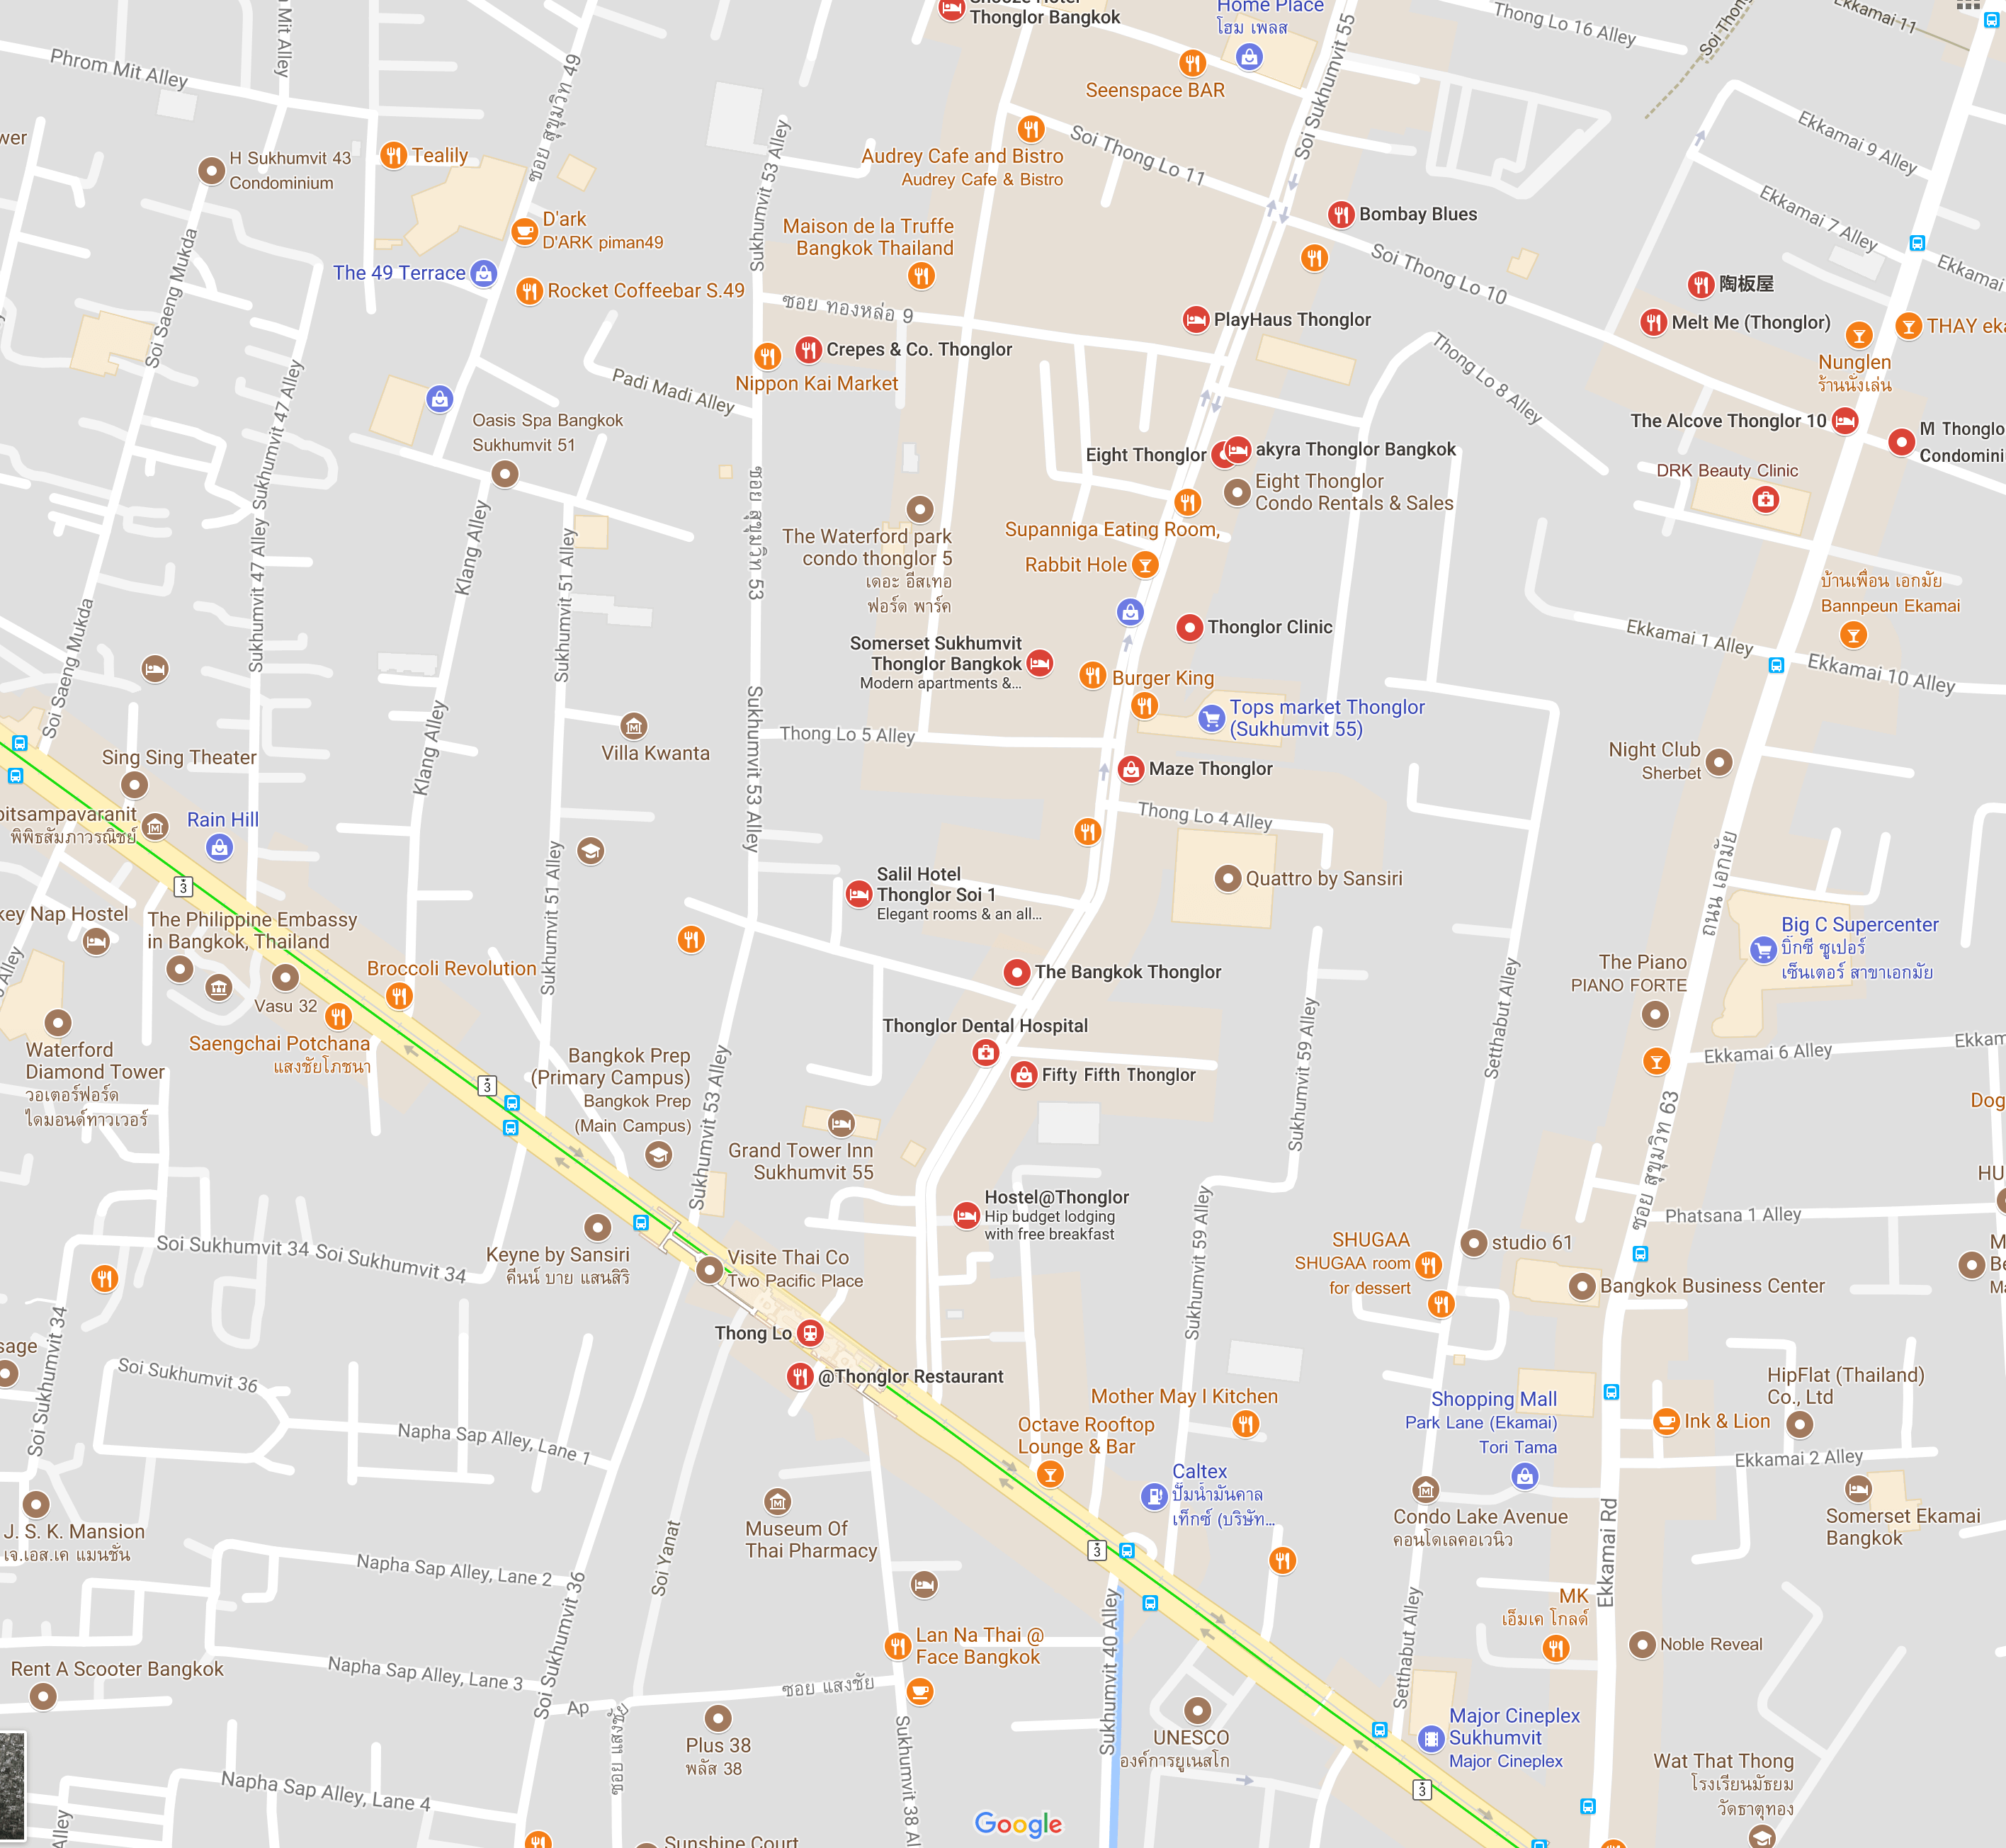 map of Thonglor